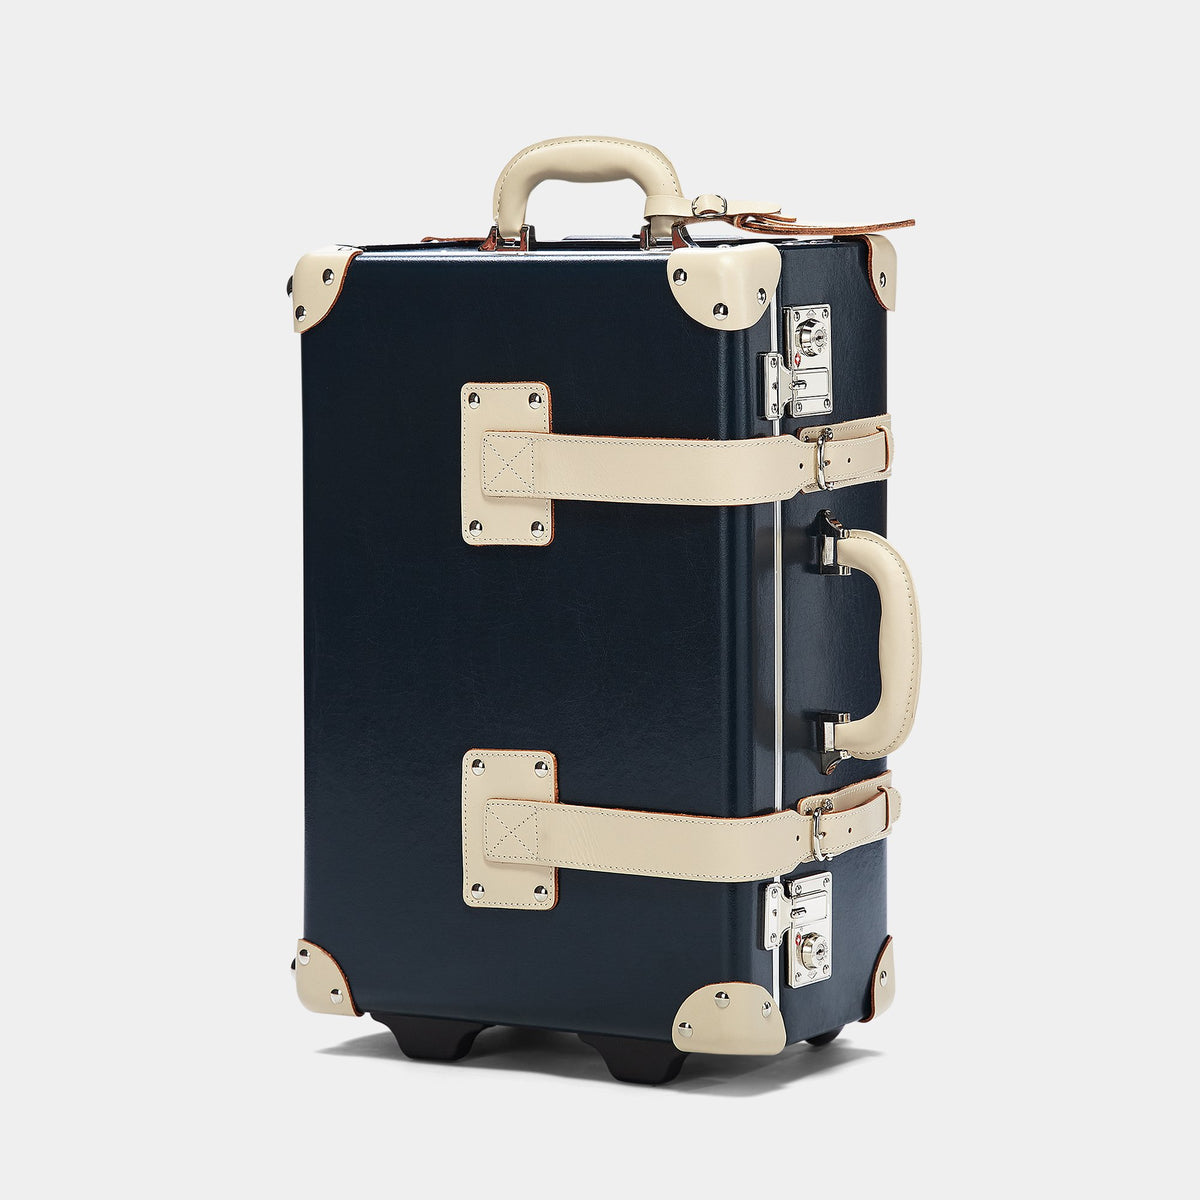 The Anthropologist Carryon in Navy - Vintage Style Leather Case - Exterior Front